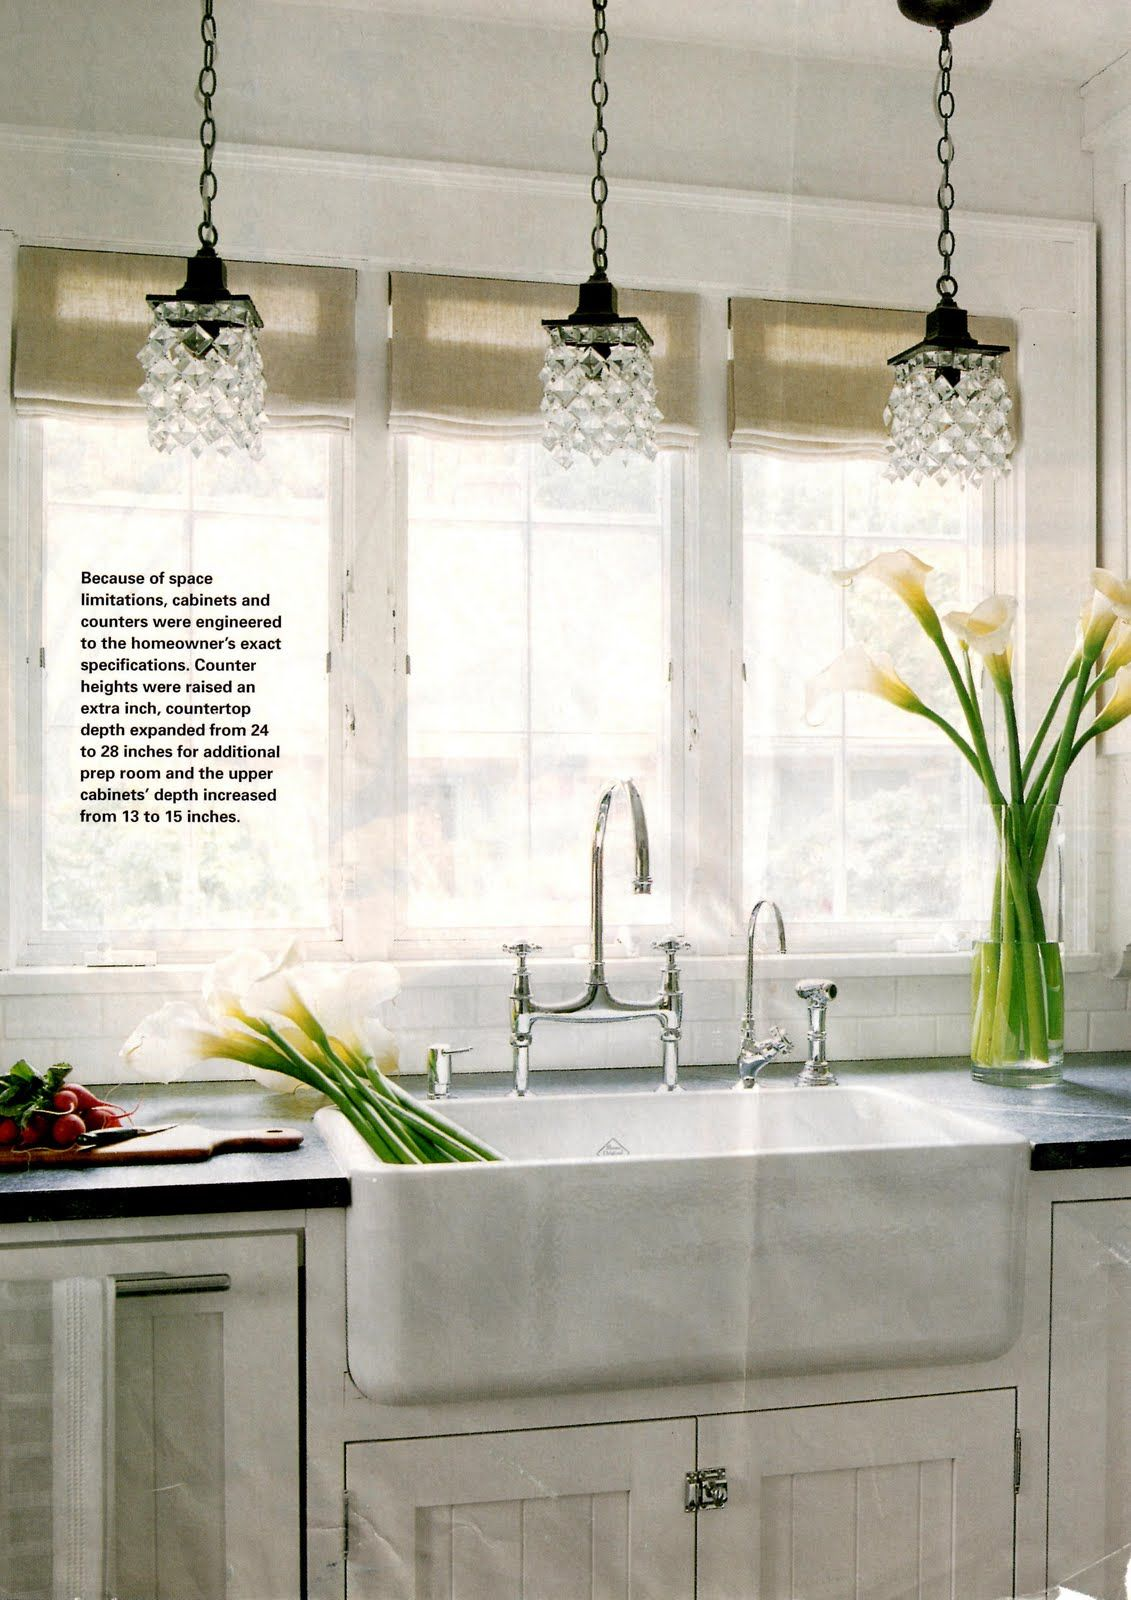 Pendants Over Sink Jpg 1131 1600 Pixels Kitchen Sink Lighting Sink Lights Kitchen Sink Design